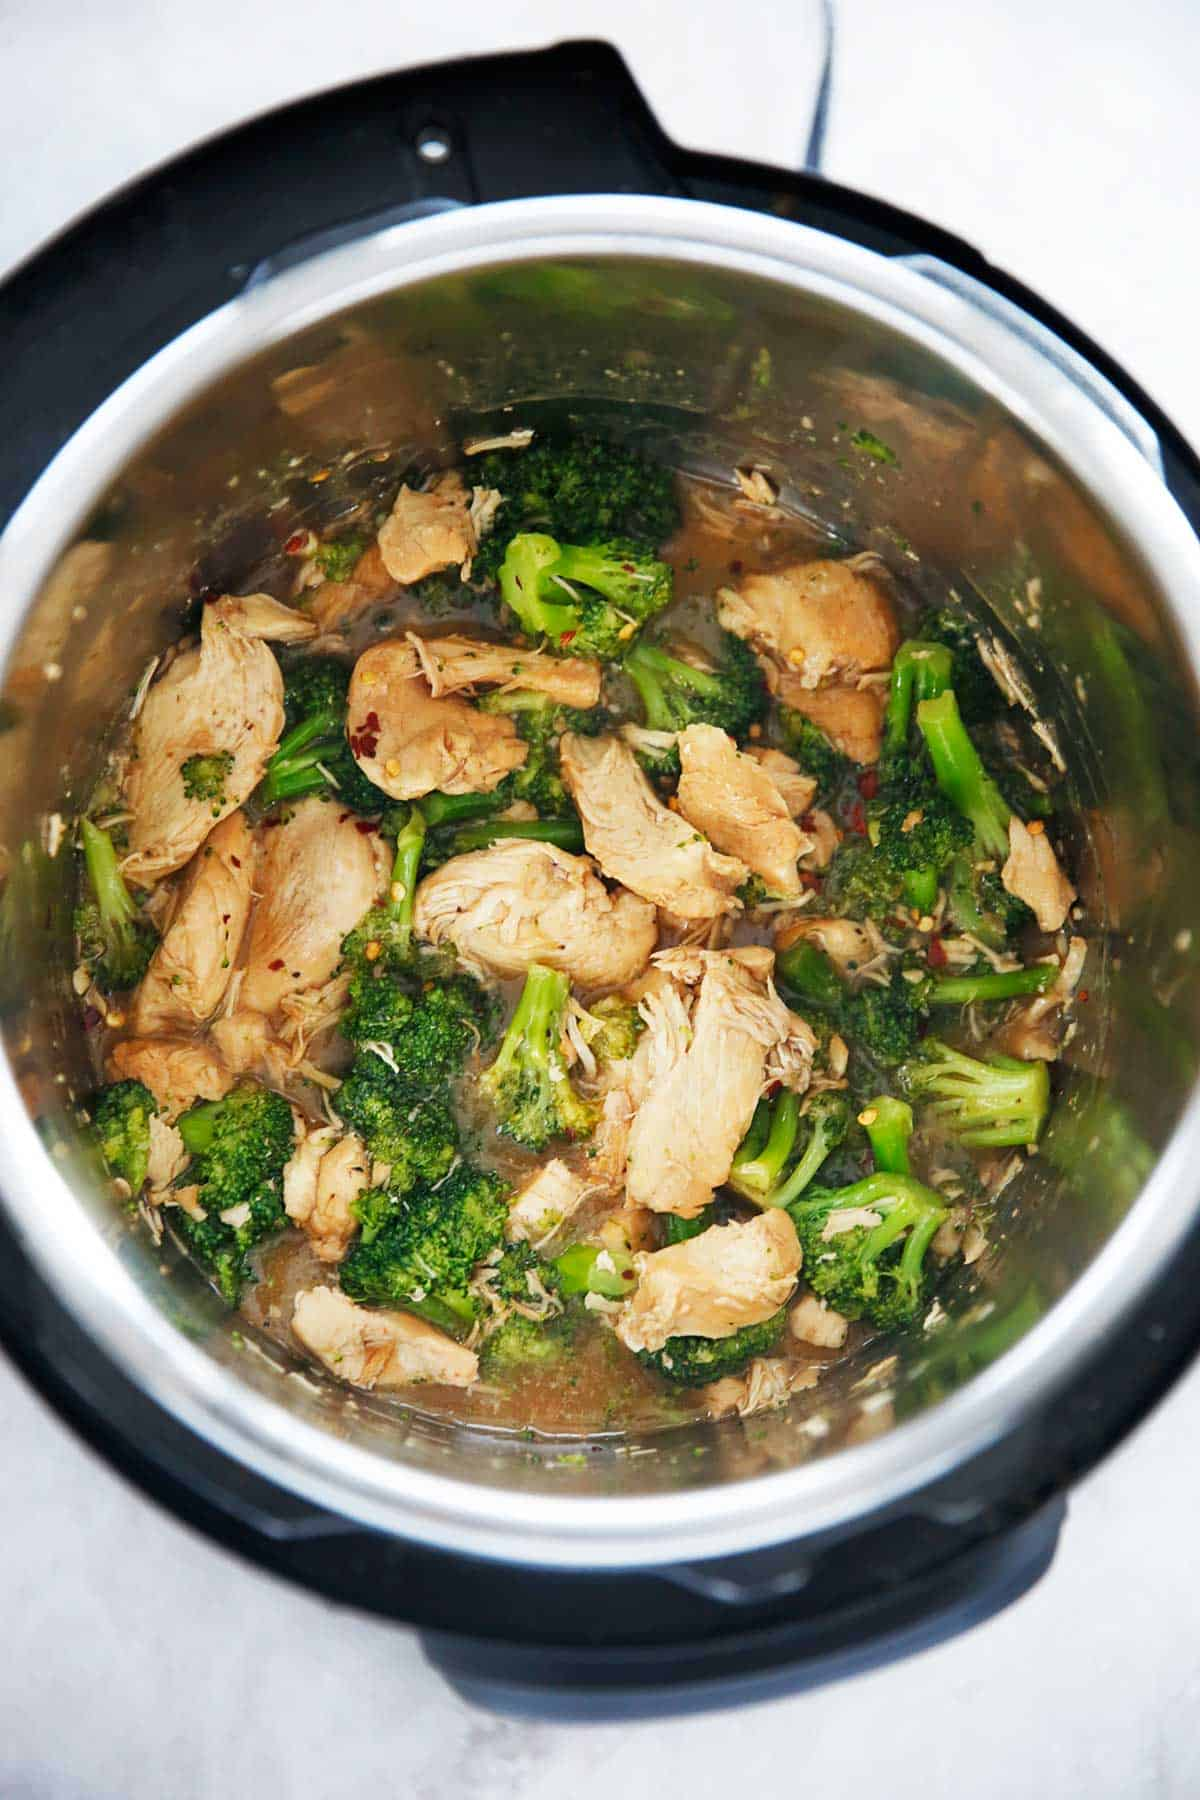 Plate of chicken and broccoli instant pot